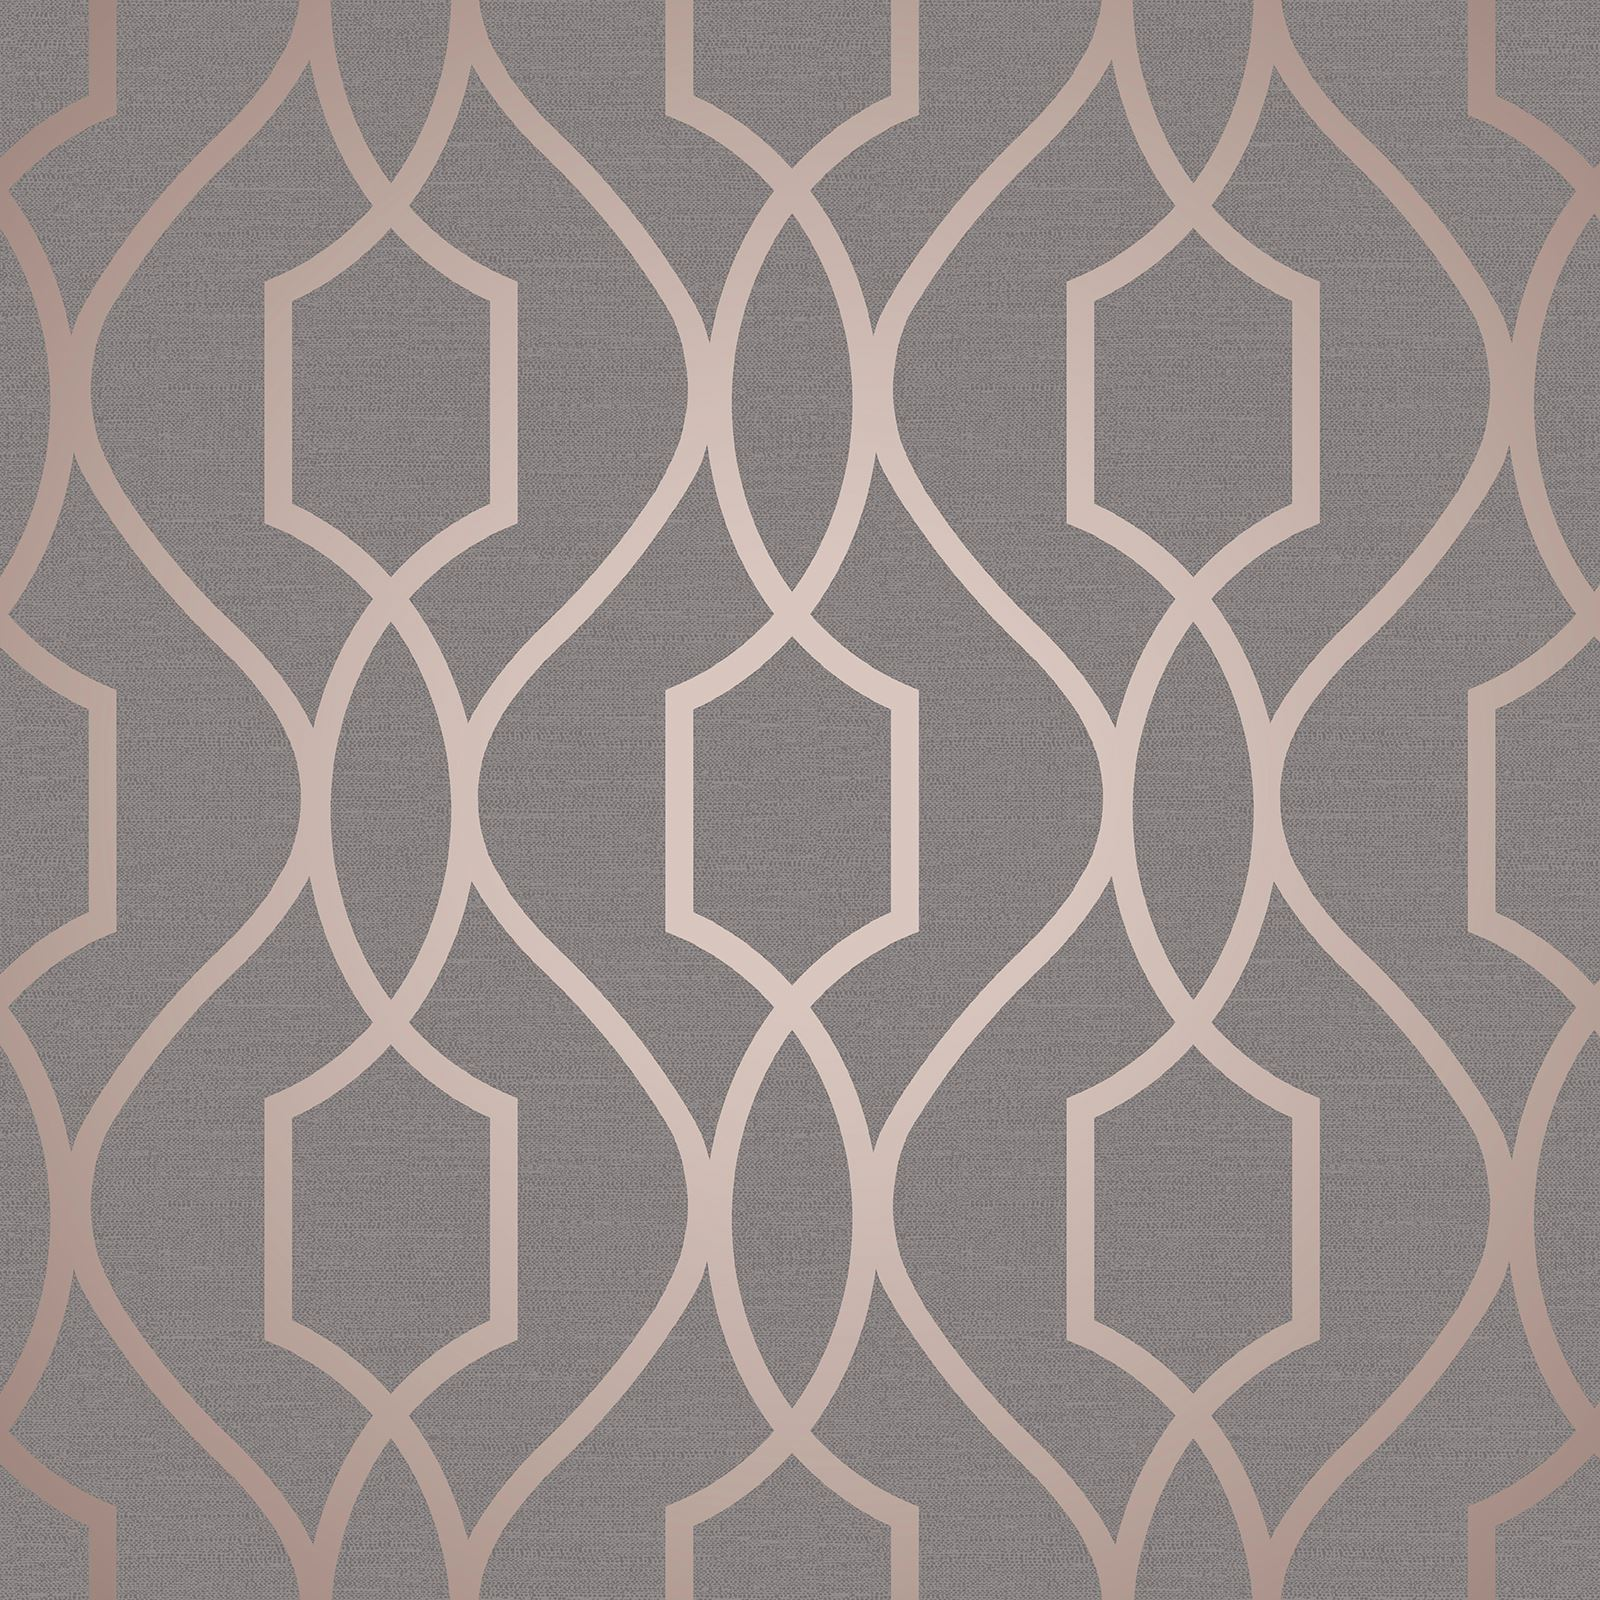 Peel Stick Wallpaper Geometric Wallpaper Various Colours And Designs Grey Rose